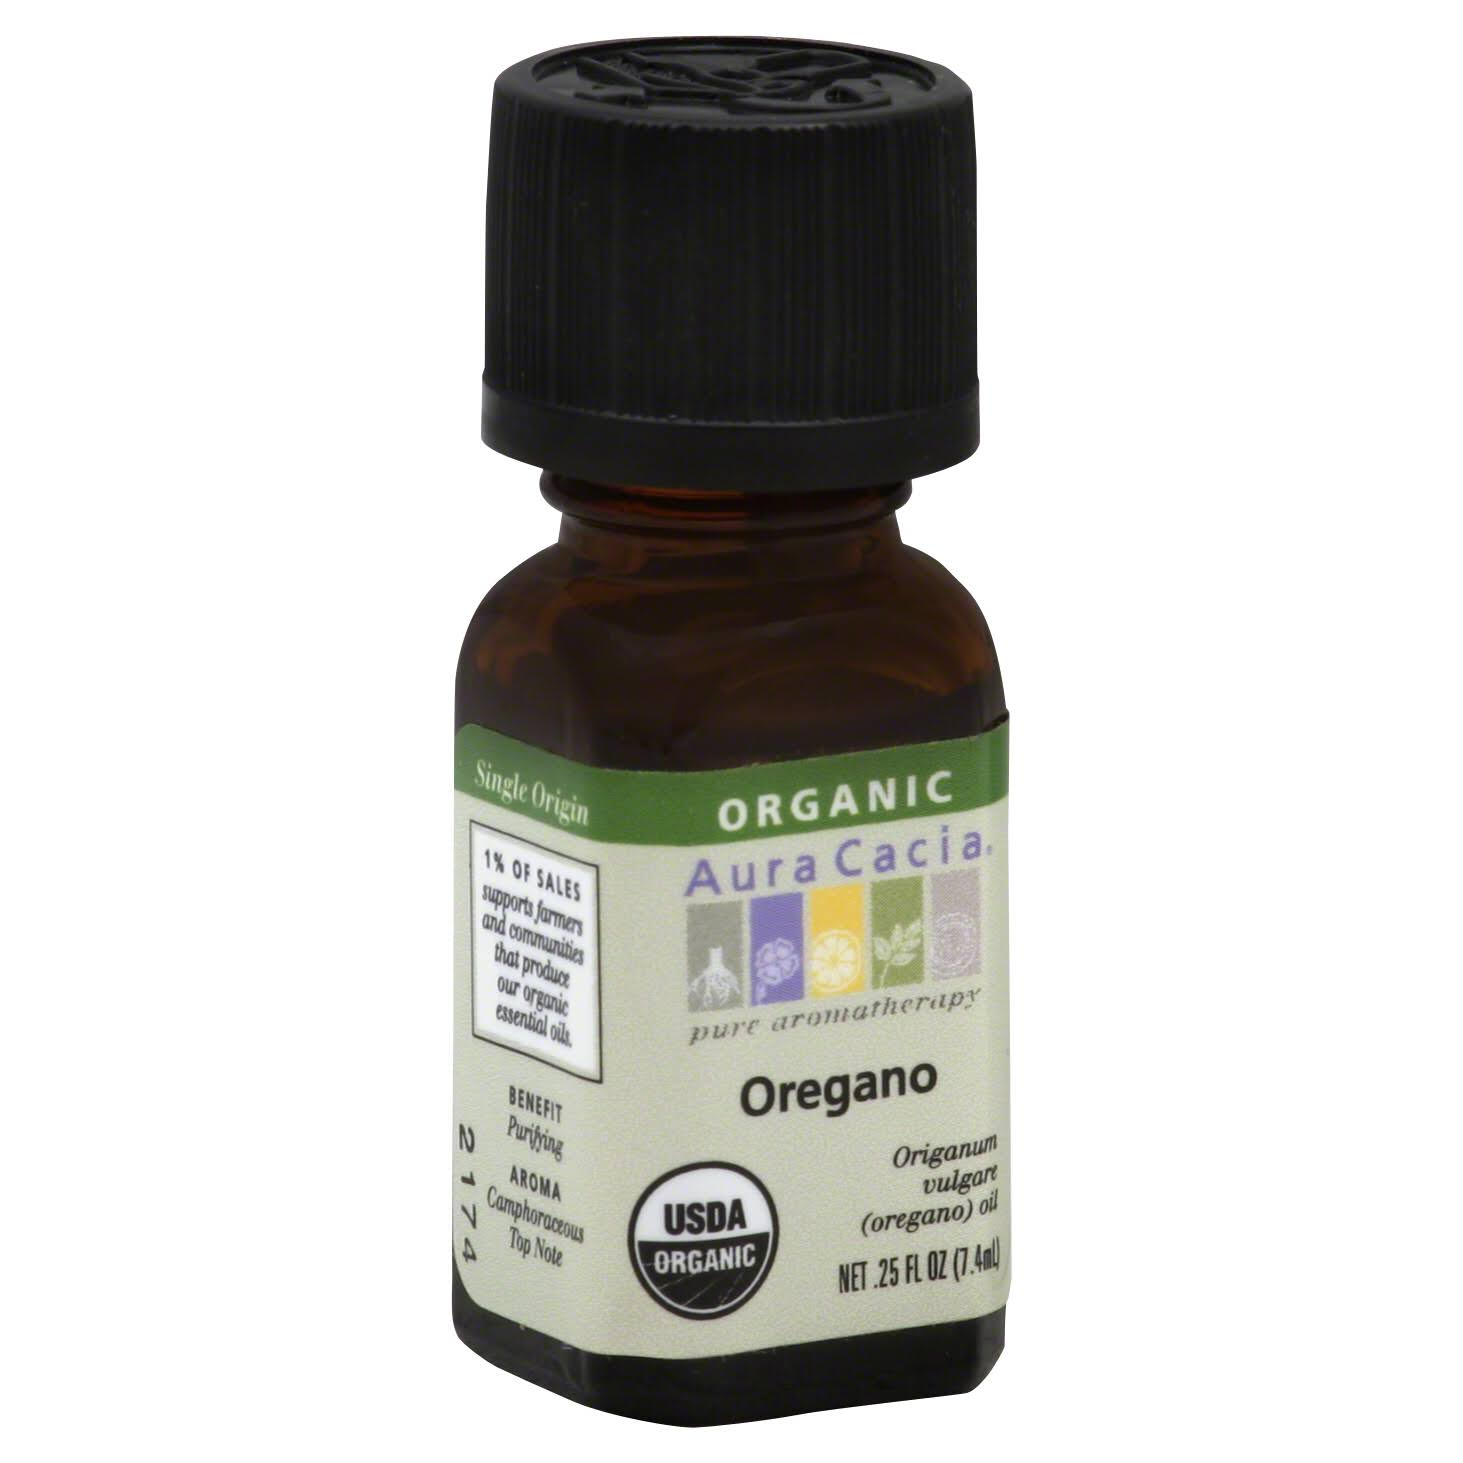 Aura Cacia Organic Essential Oil - Oregano, .25oz